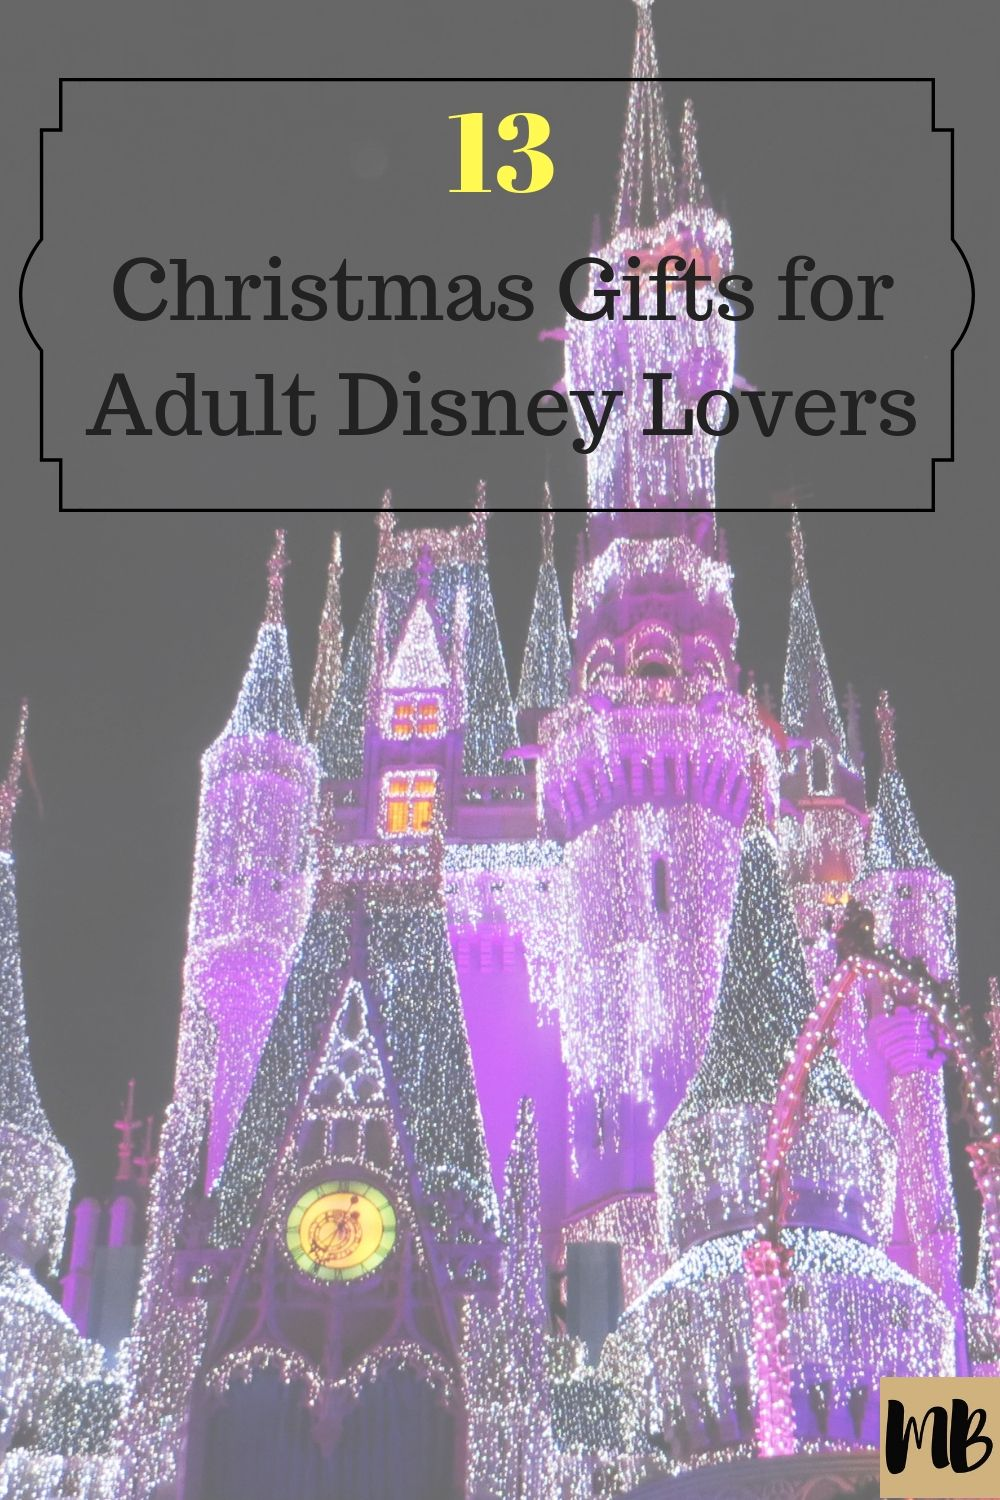 13 Best Disney Christmas Gifts for Adults in 2018 | Gift Guides ...